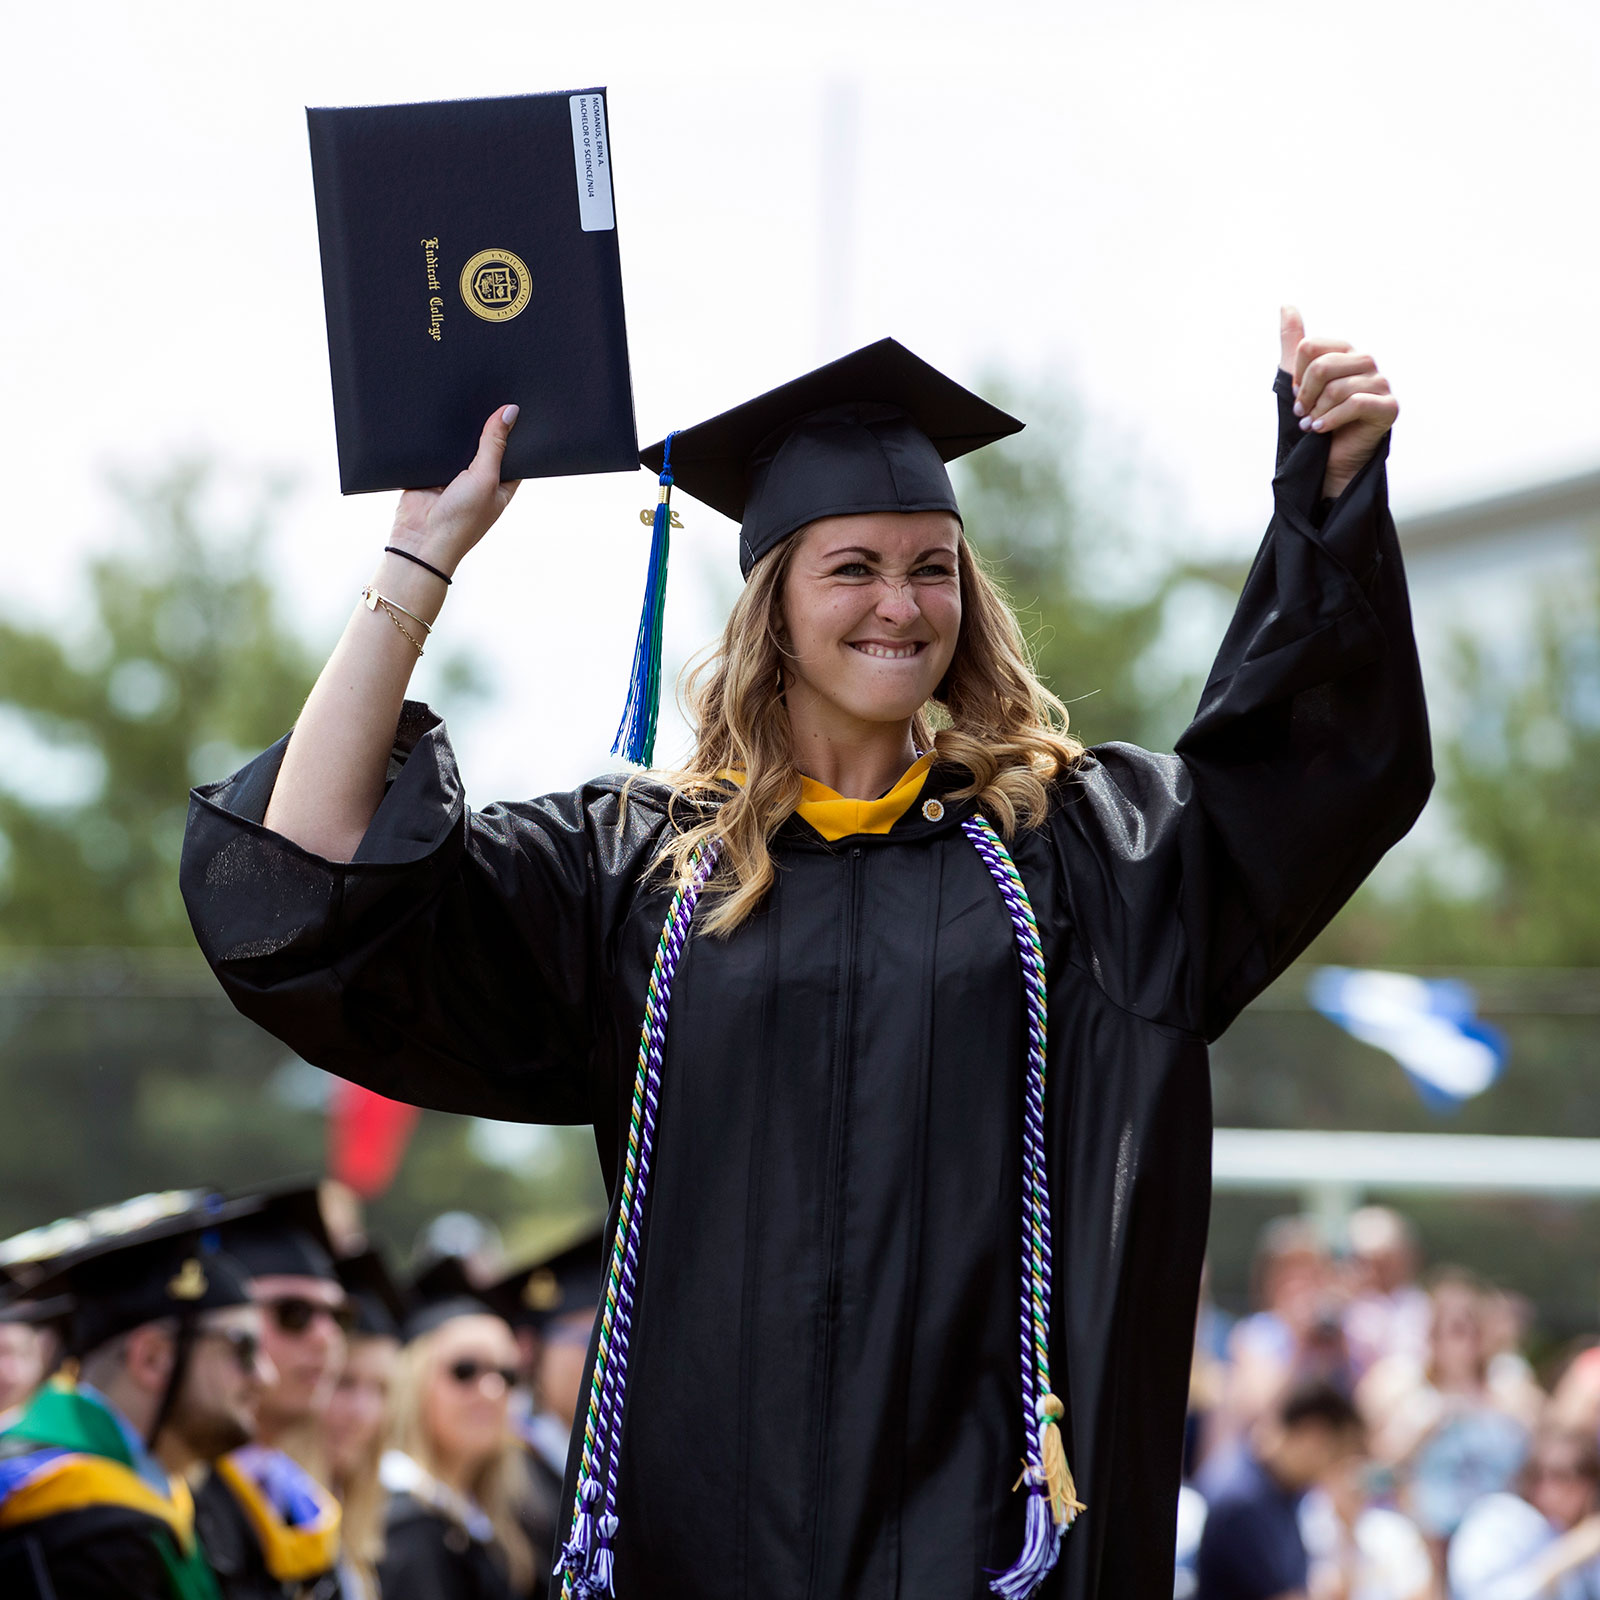 Graduate holding up diploma